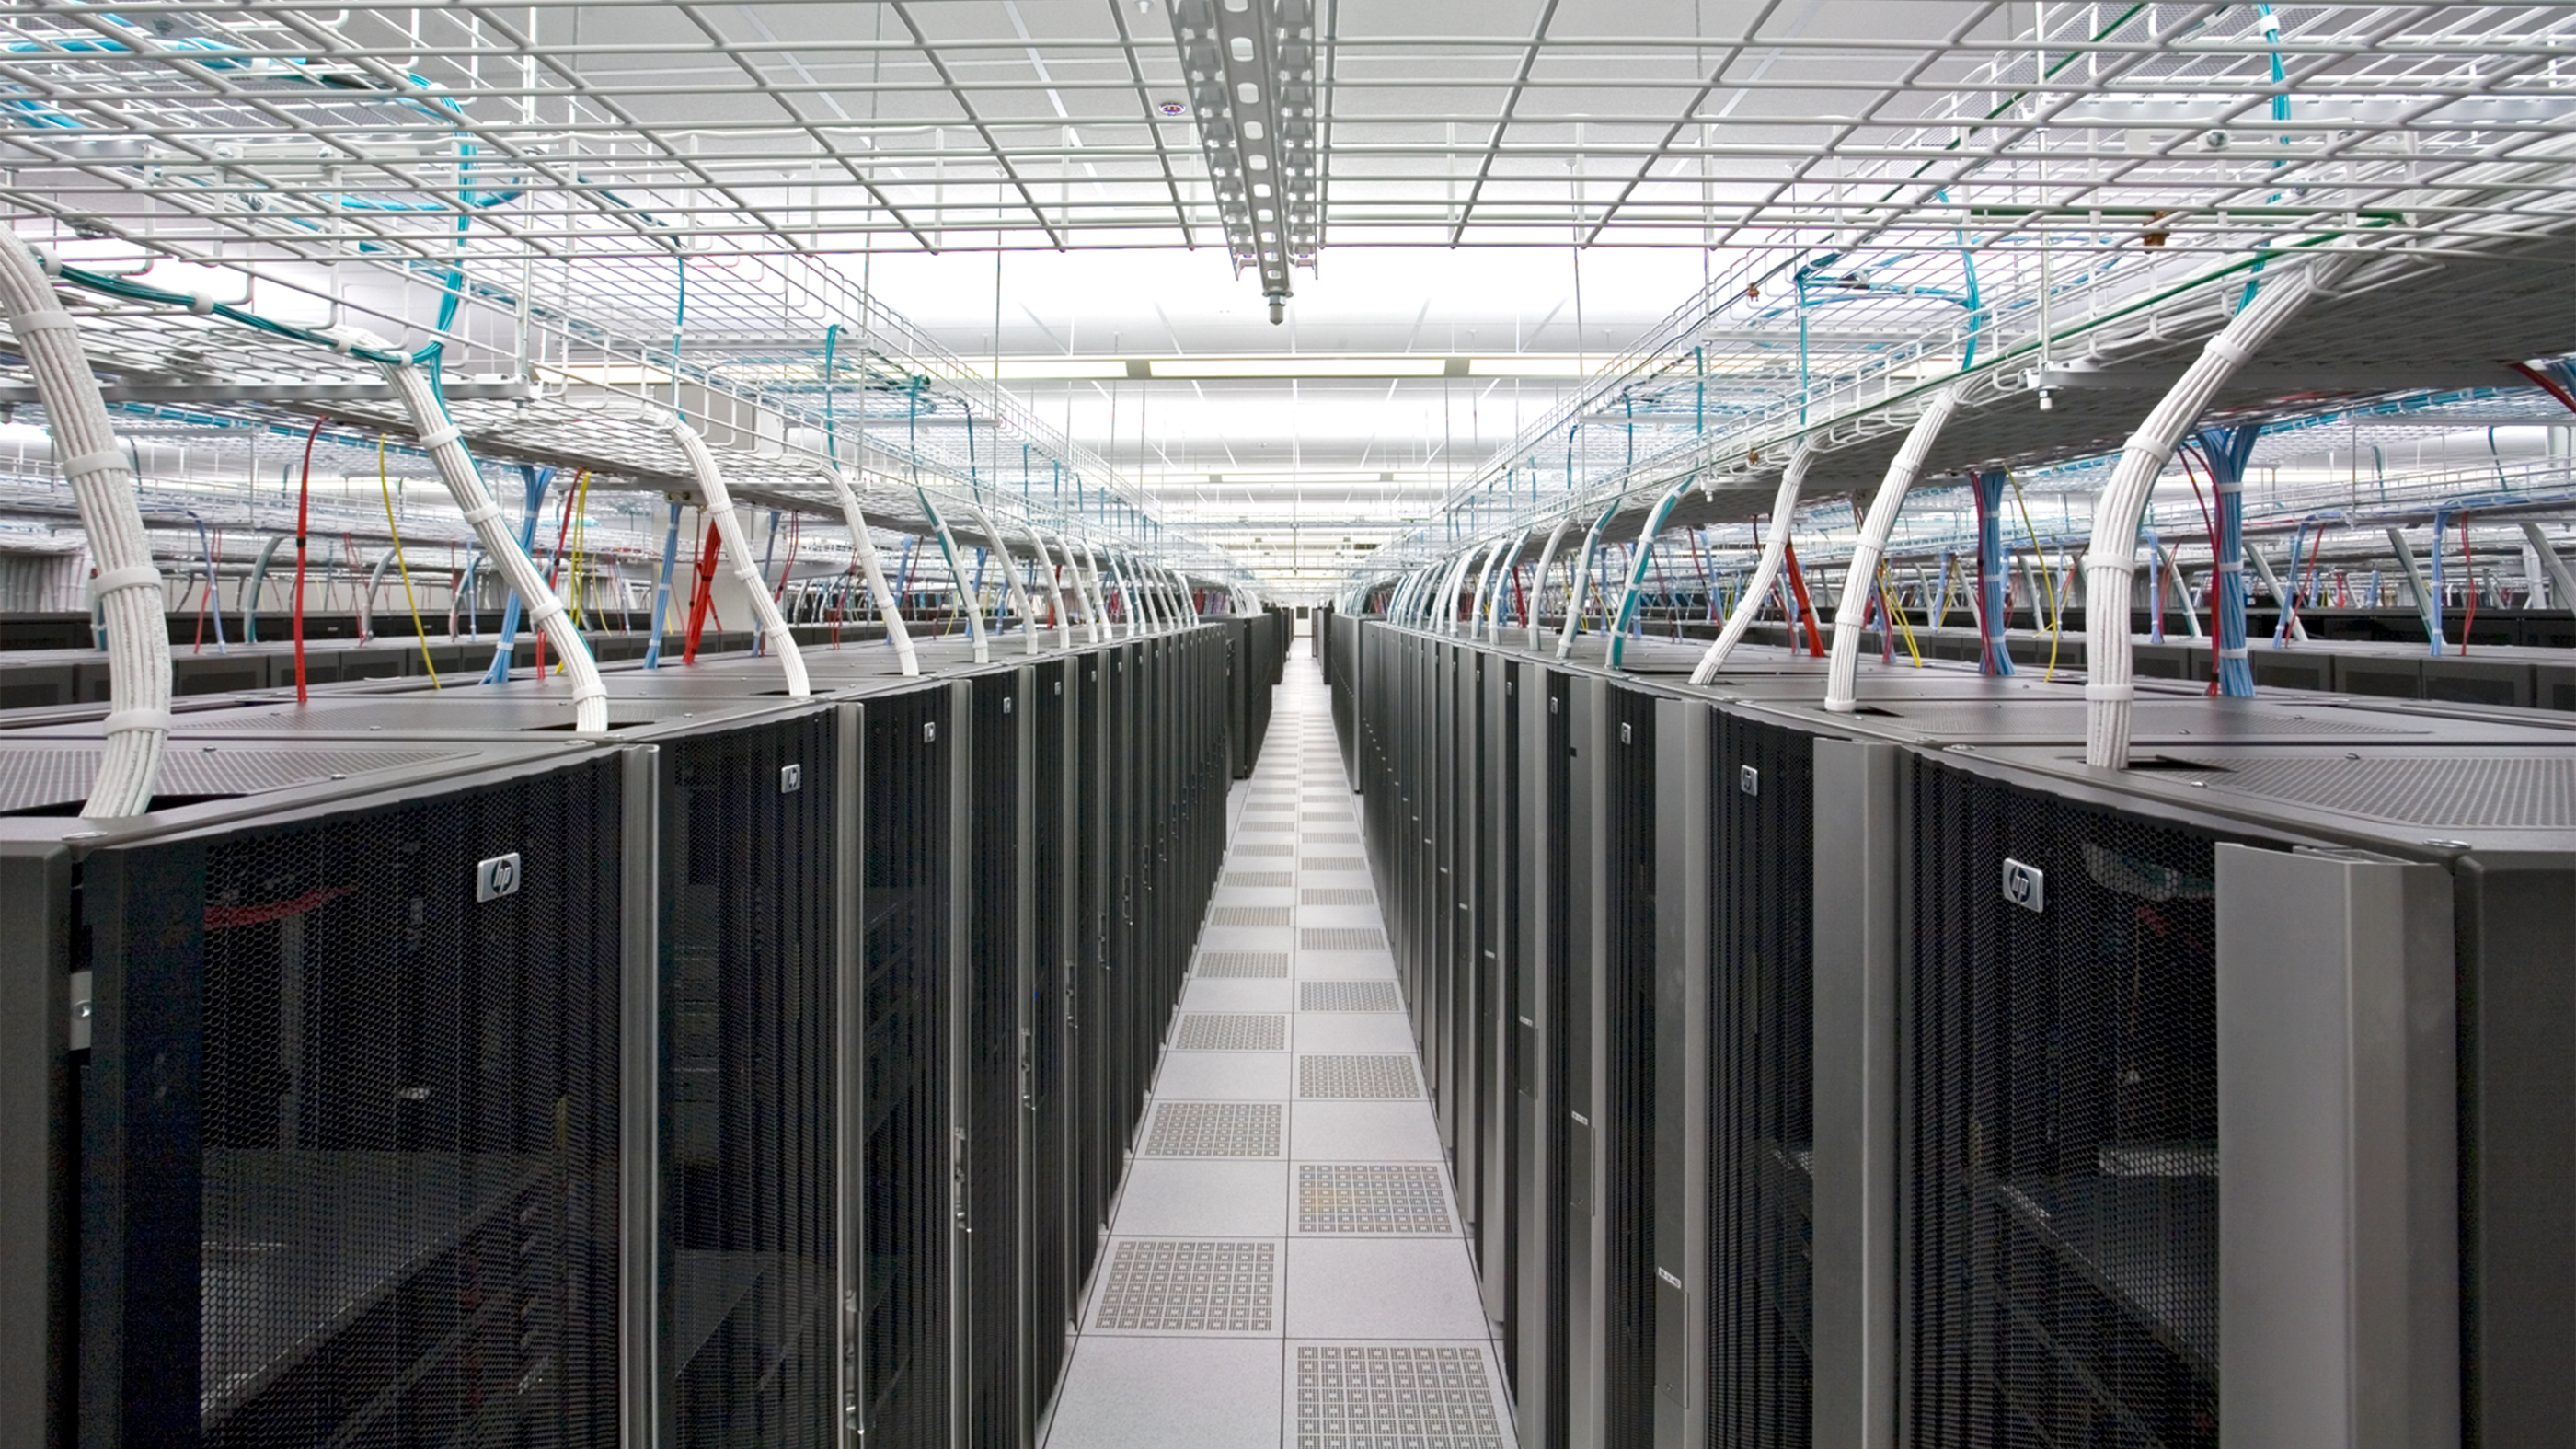 View down a server aisle with organized wiring above the rows.